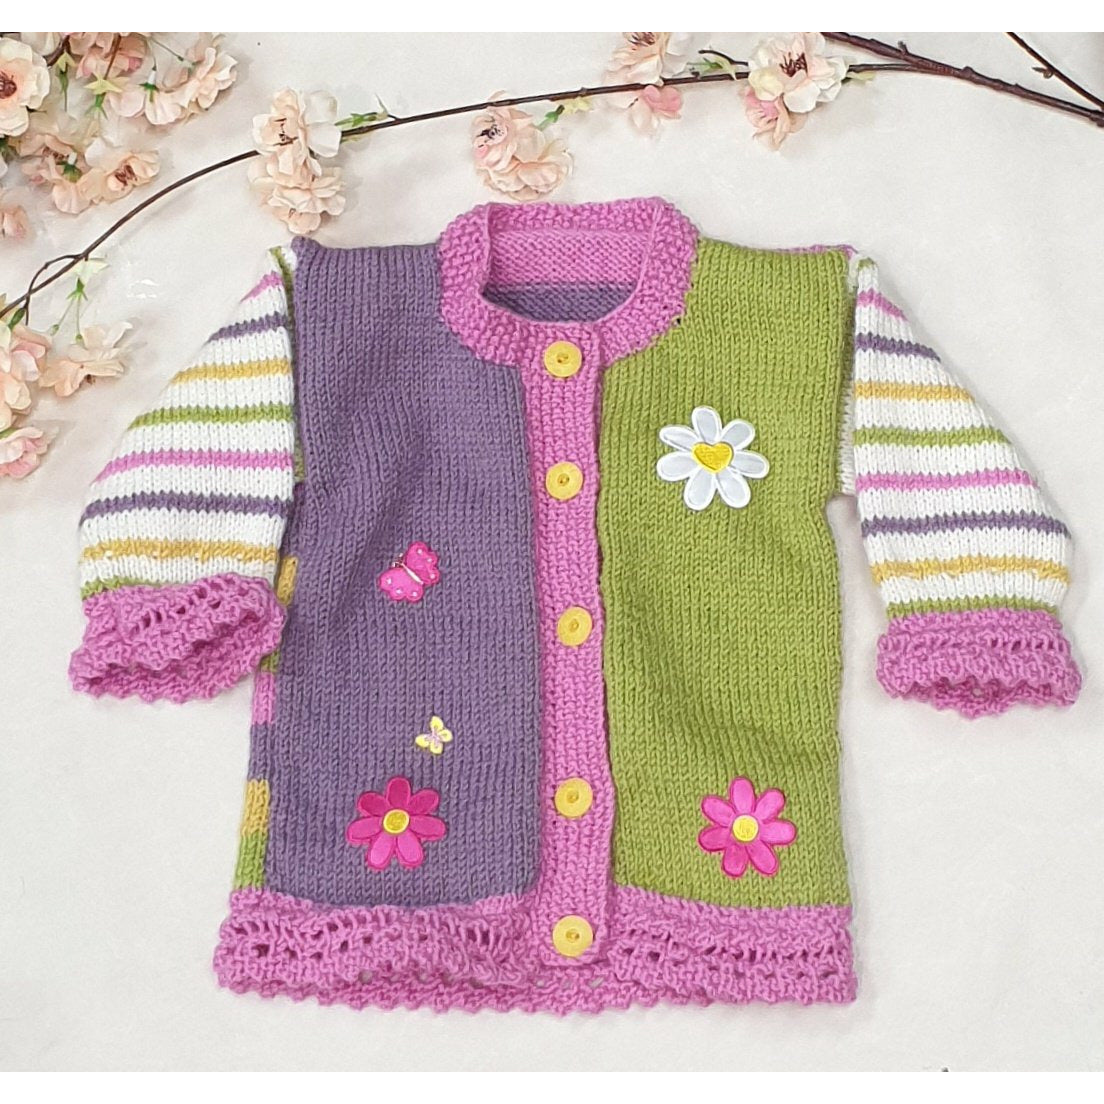 KNITWEAR - Purple Pink Green w/ Candy Stripes Cardi - 12-18 mths